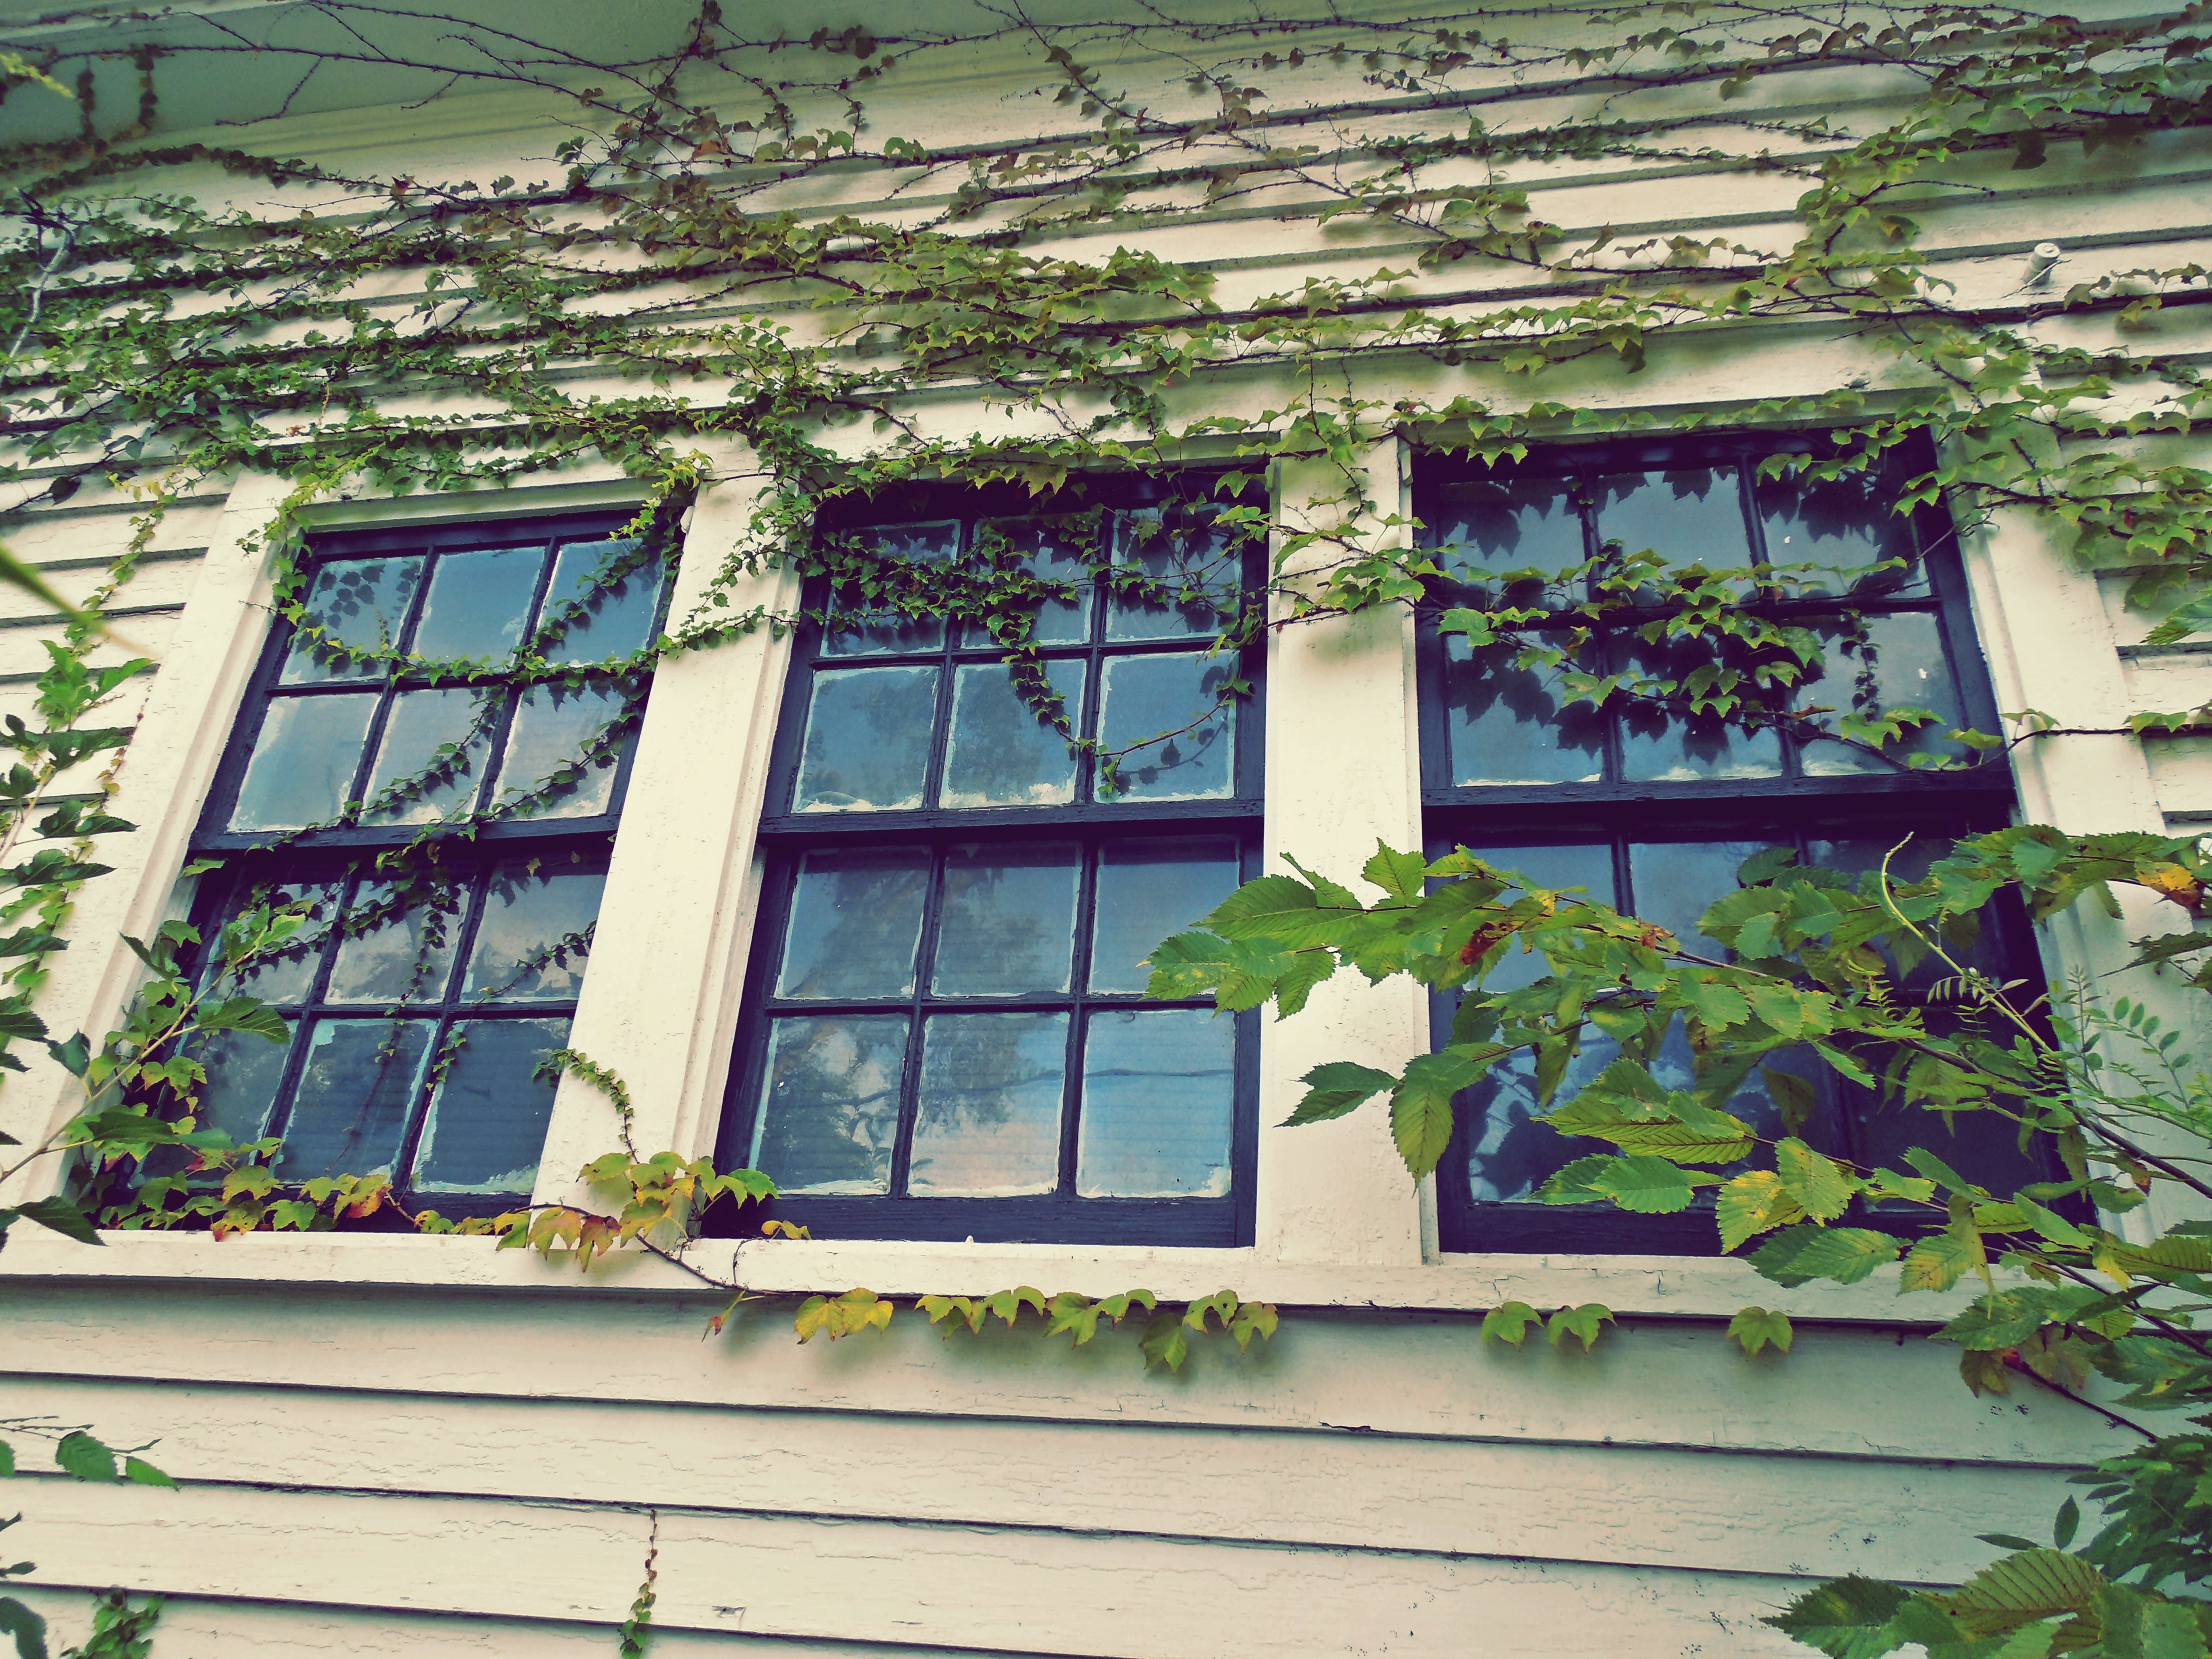 3 Closed Window Pane Slightly Covered With Green Vines at Daytime